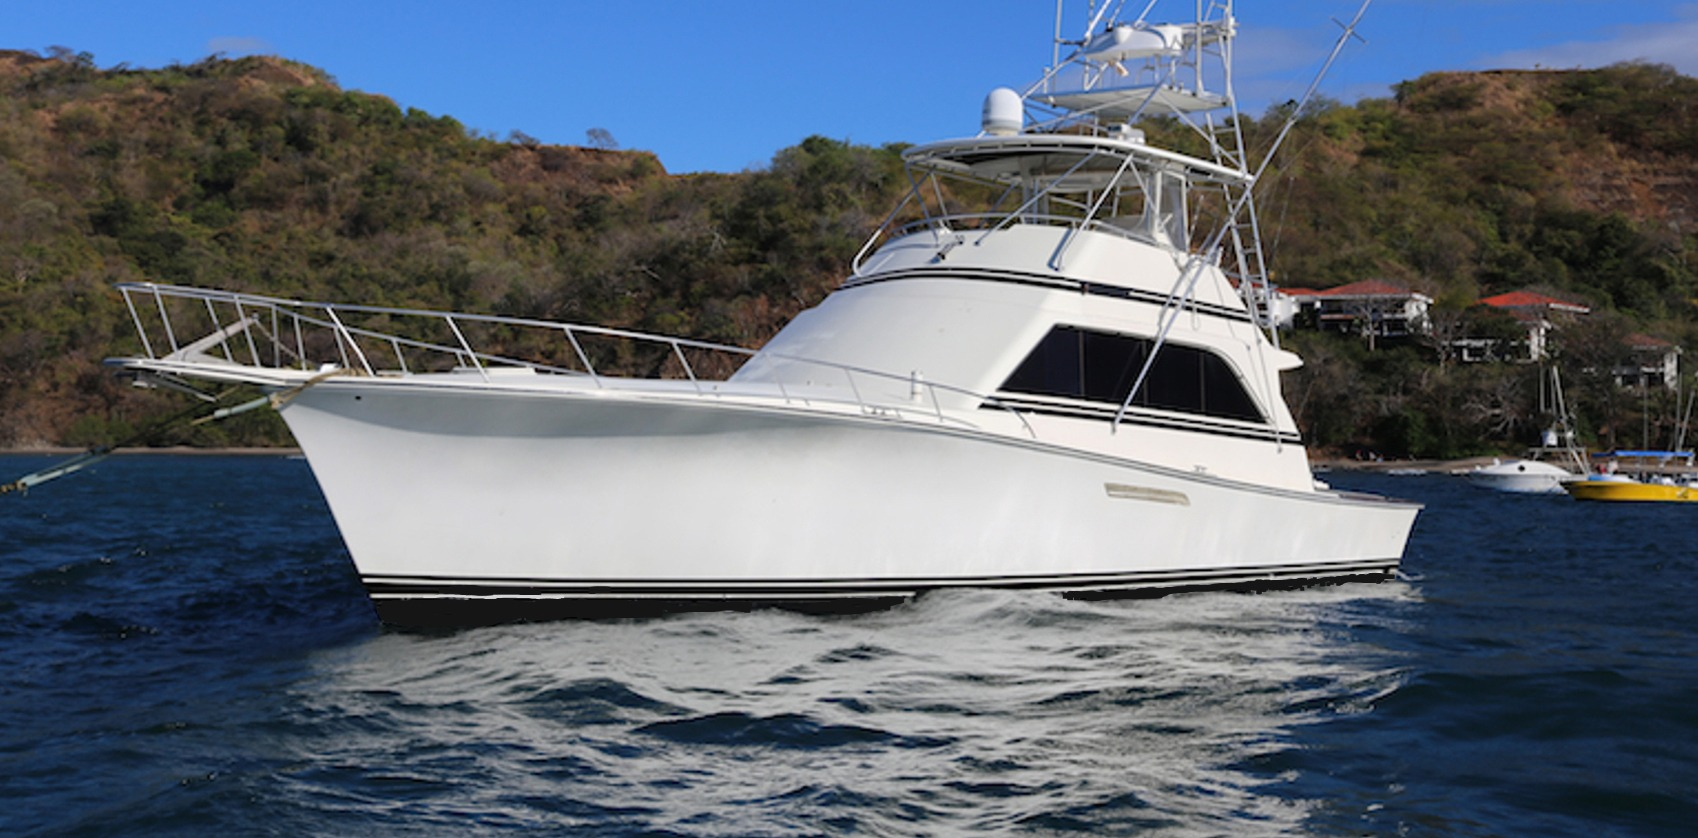 Come aboard your charter boat costa rica fishing charters for Costa rica fishing charters